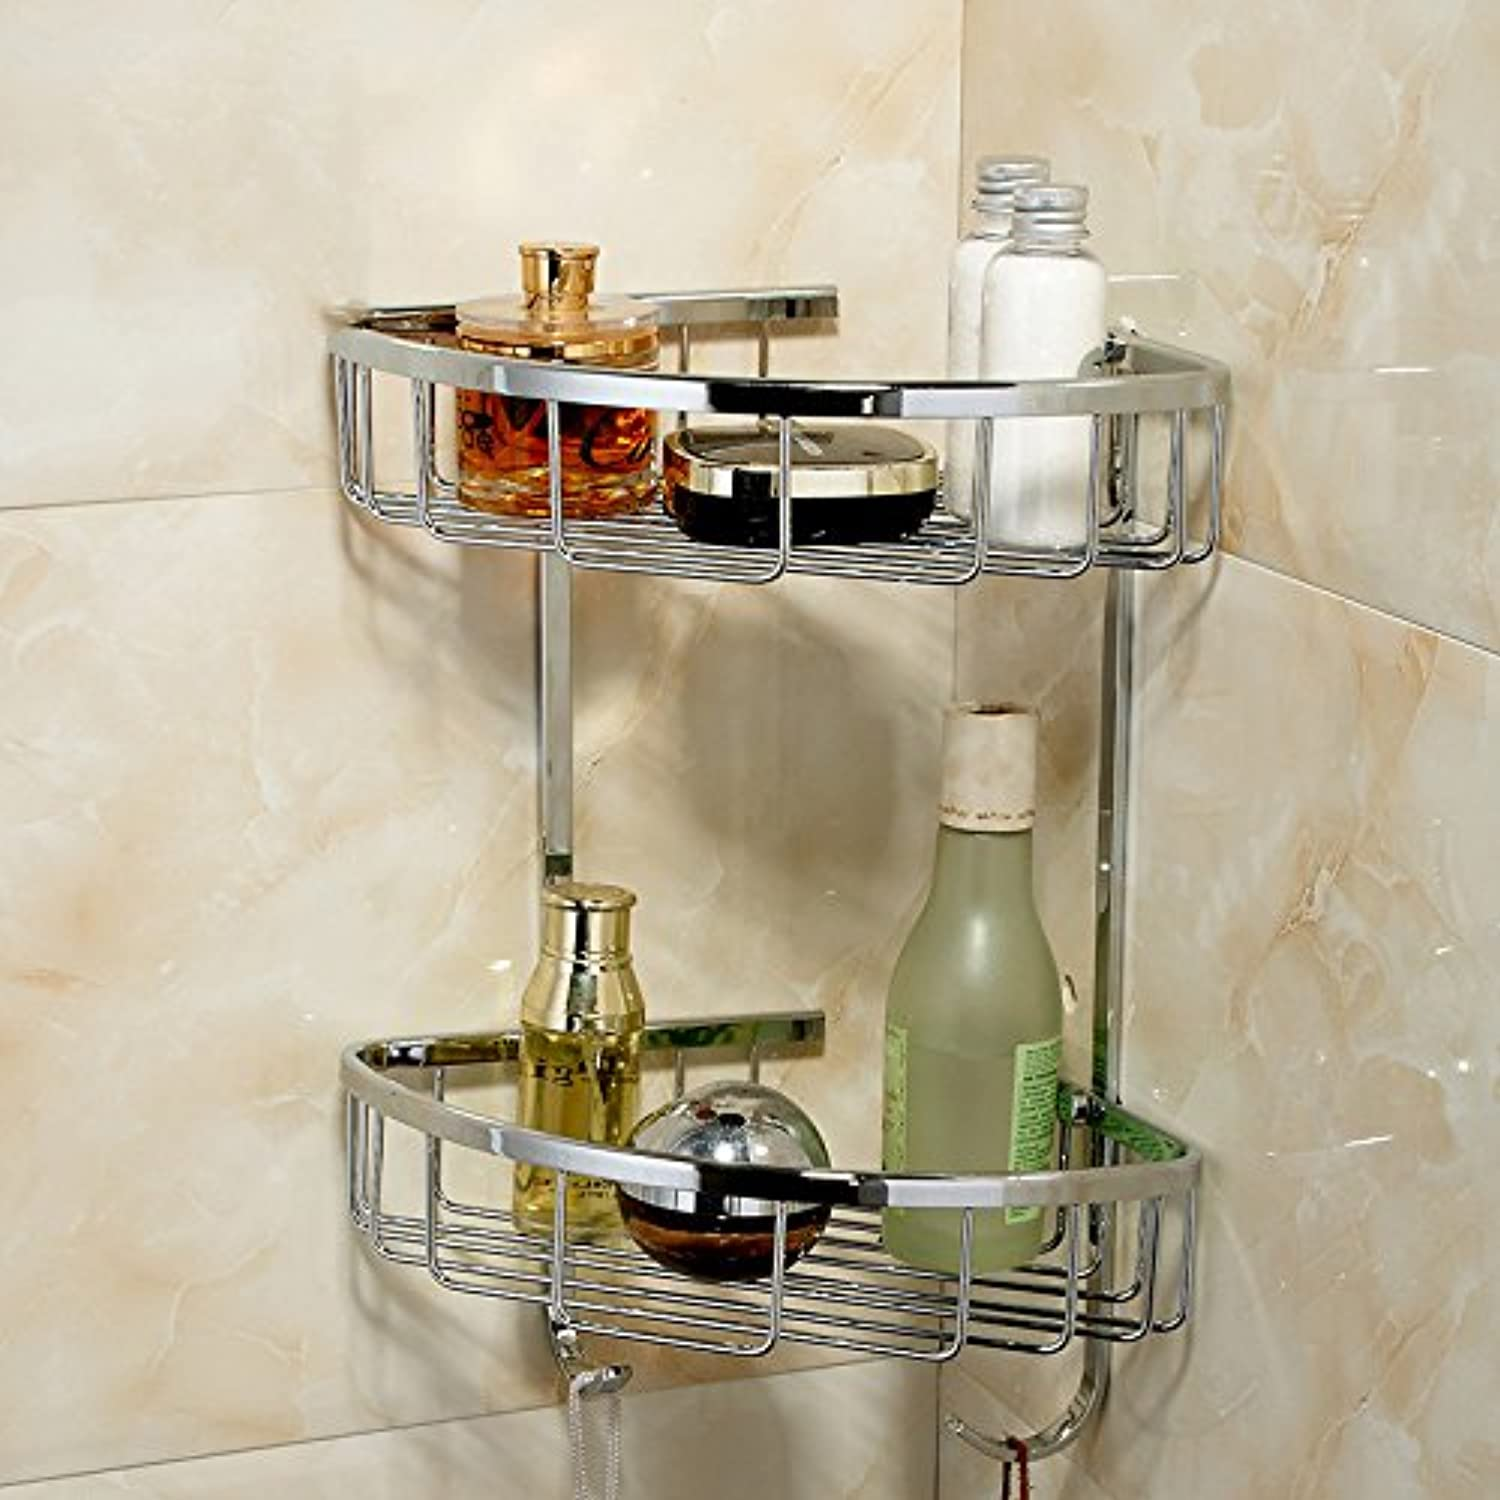 All Copper Chrome Simple Bathroom Triangle Basket Bathroom Corner Rack Wall Rack, Double Layer